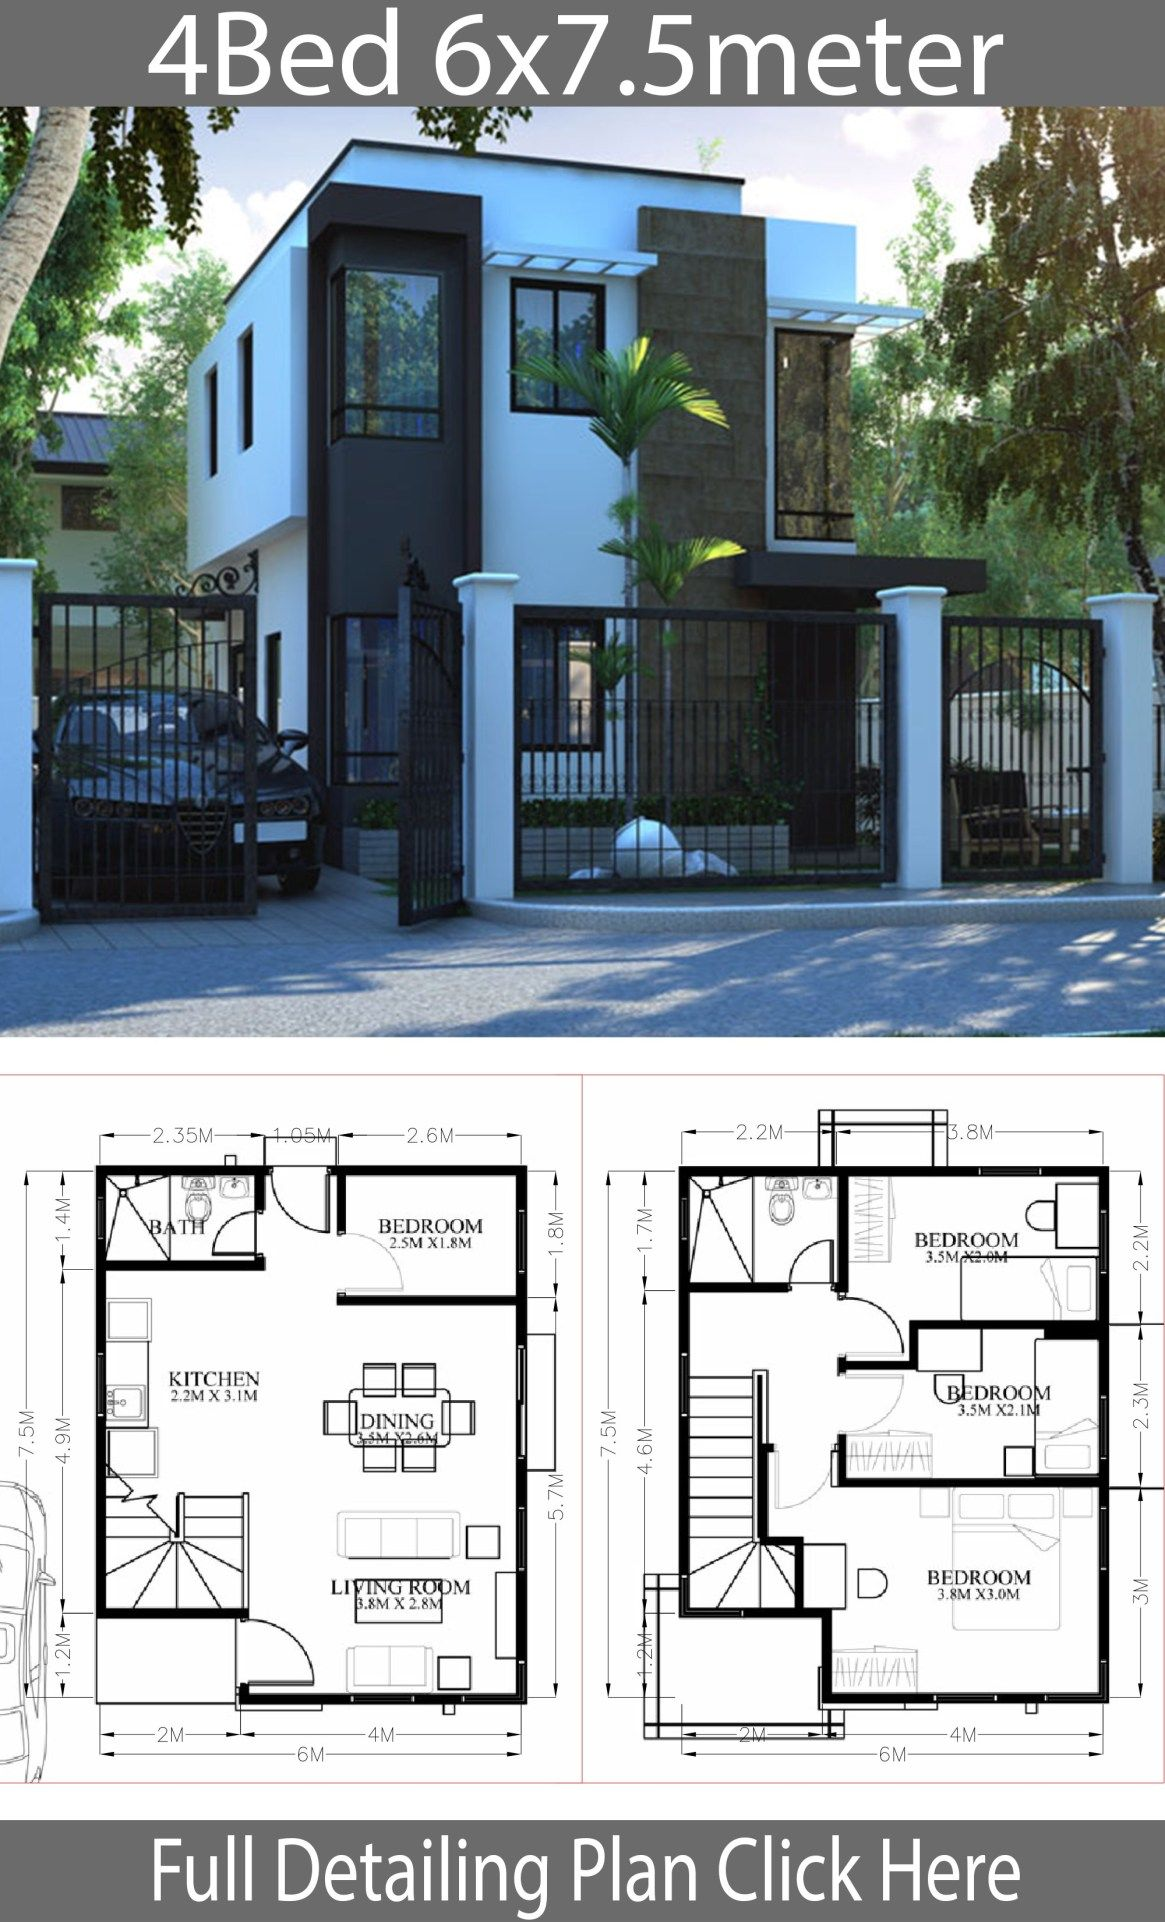 Small Home Design Plan 6x7 5m With 4 Bedrooms Modern House Design 4 Bedroom House Designs Bedroom House Plans